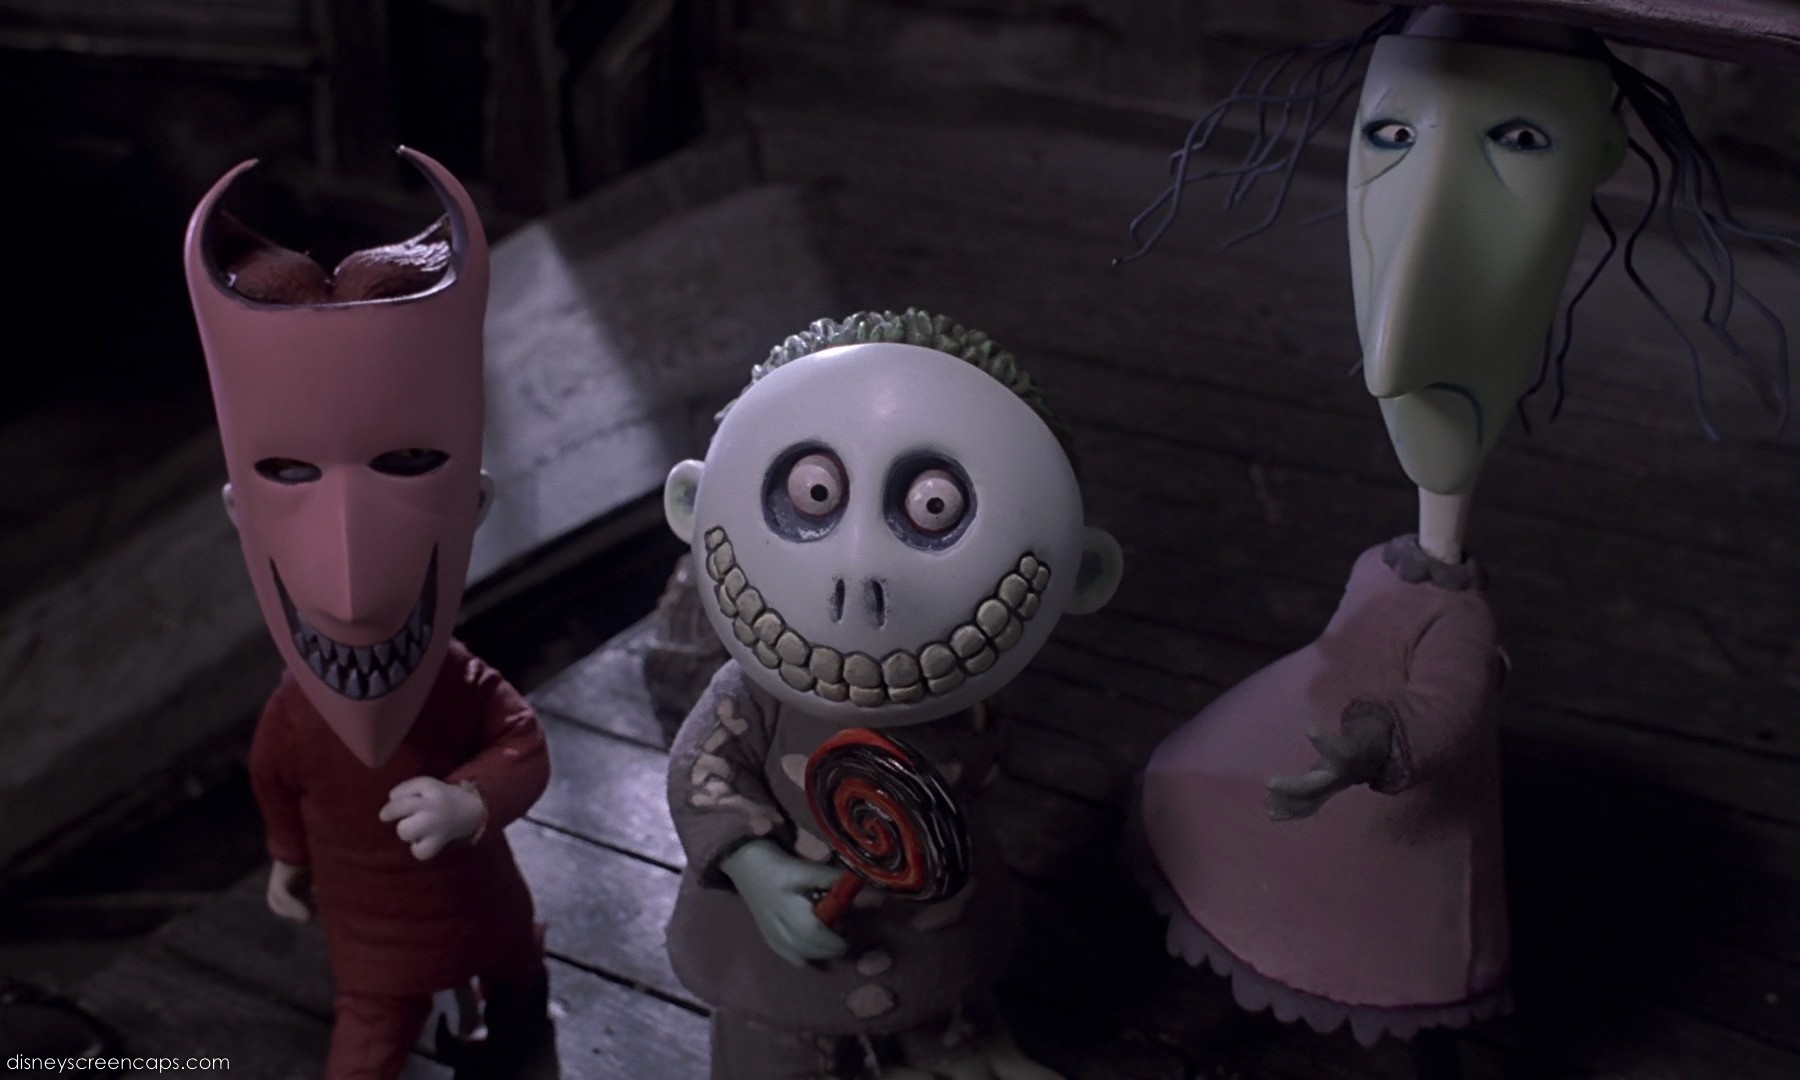 The trick-or-treaters tasked with kidnapping Sandy Claws